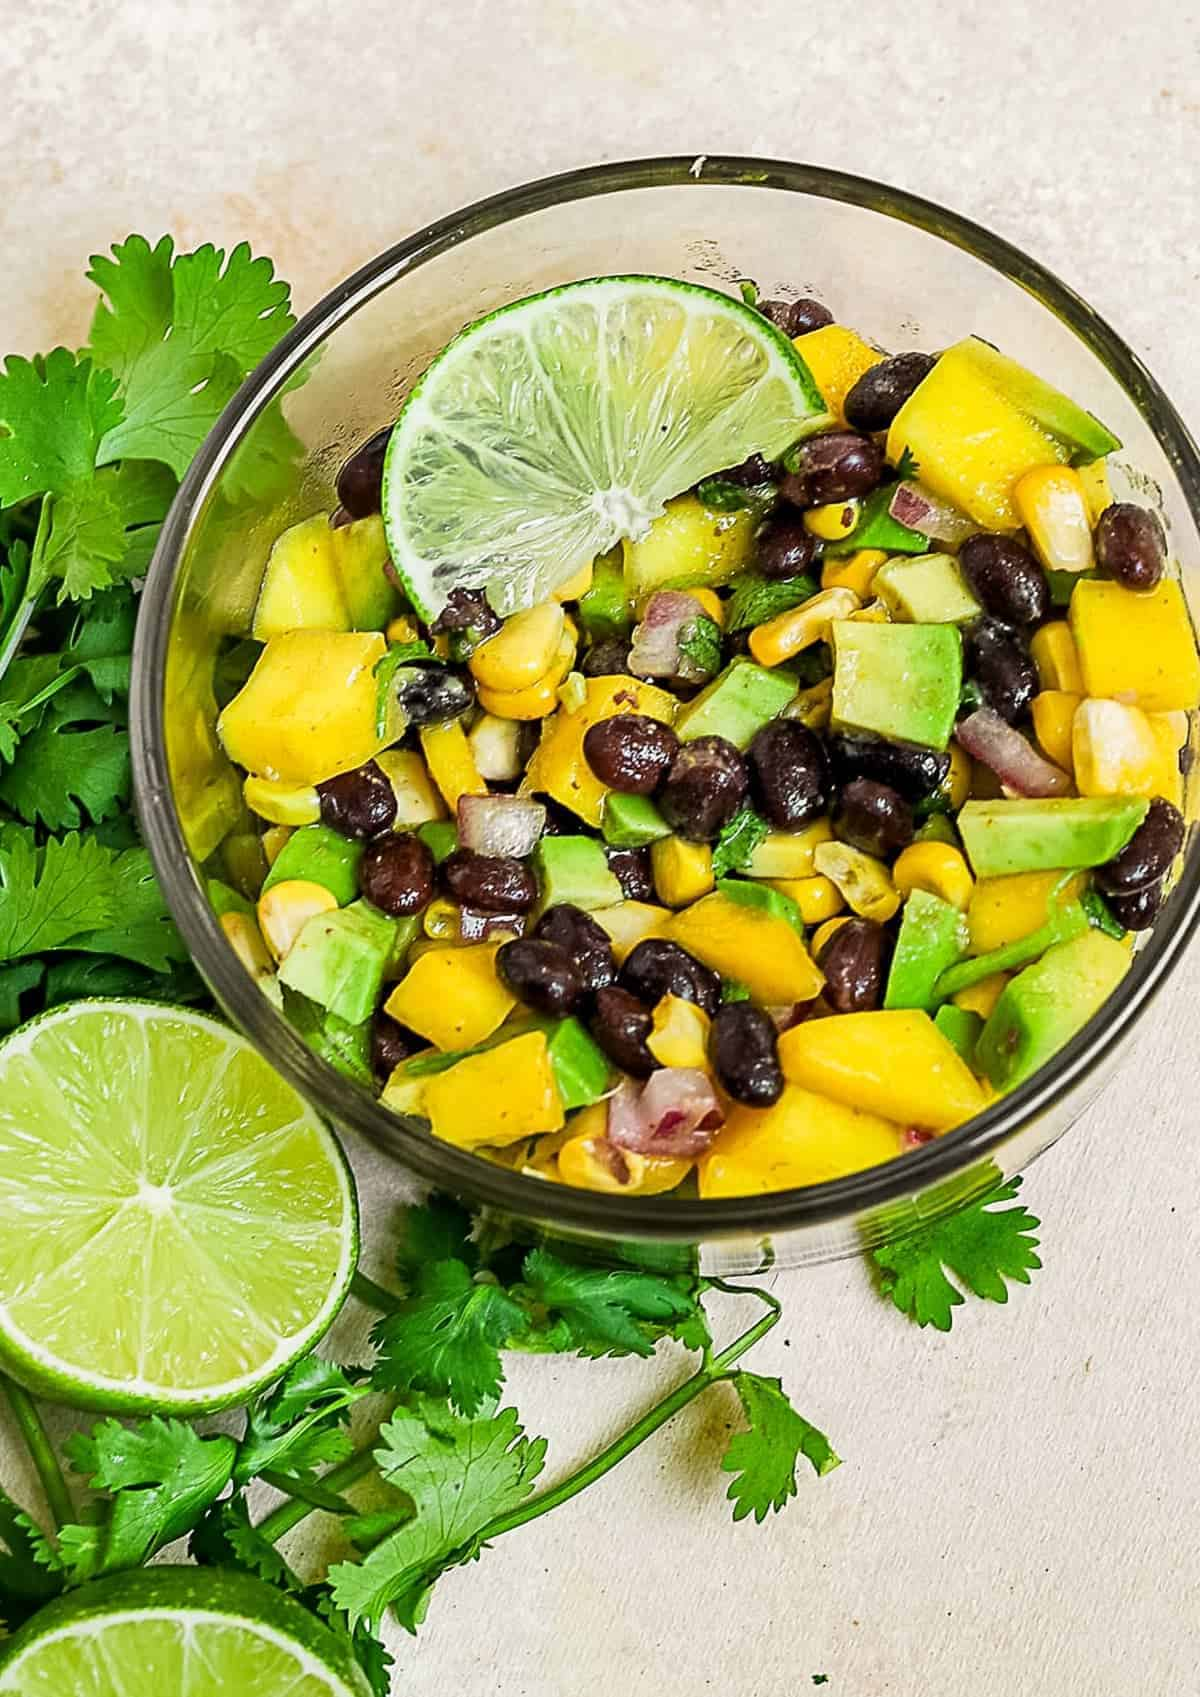 Avocado and mango salsa in a glass bowl